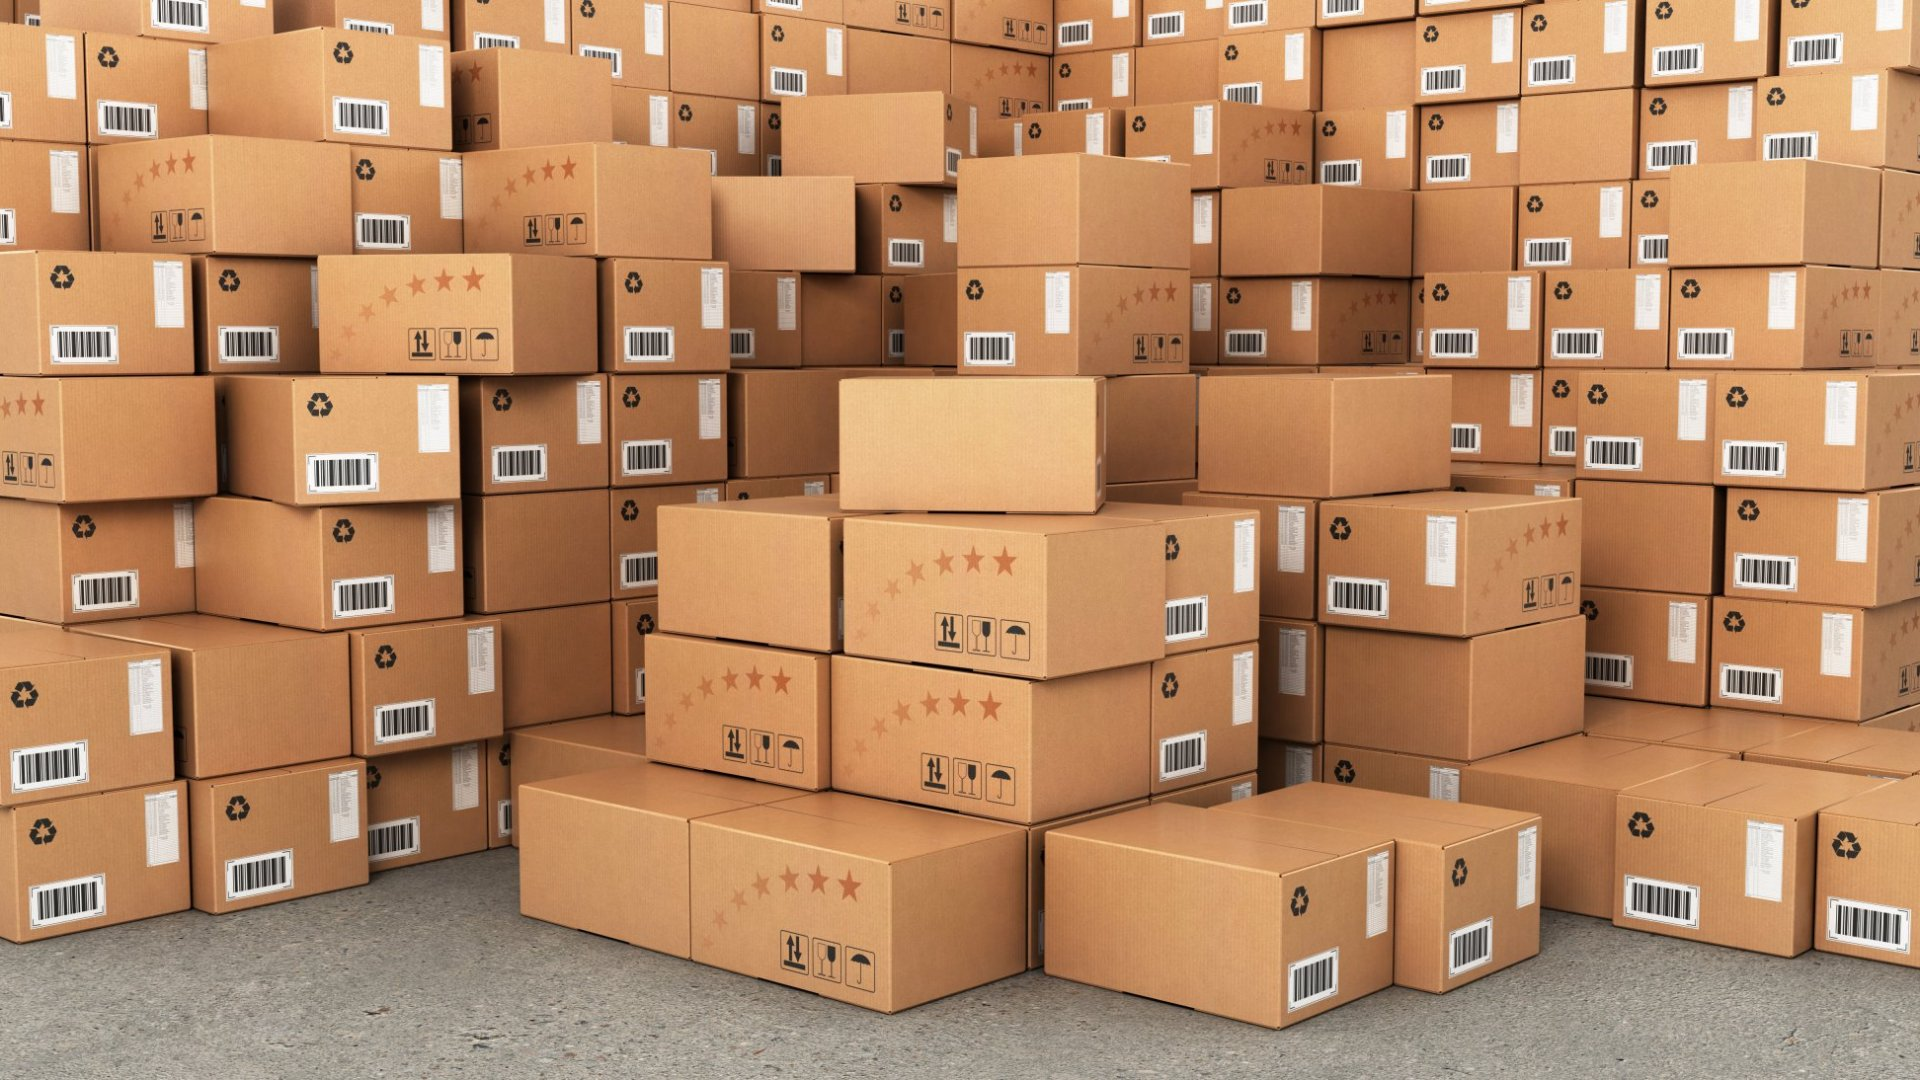 The Psychological Reason Why People Habitually Return Items (and How to Stop Them)